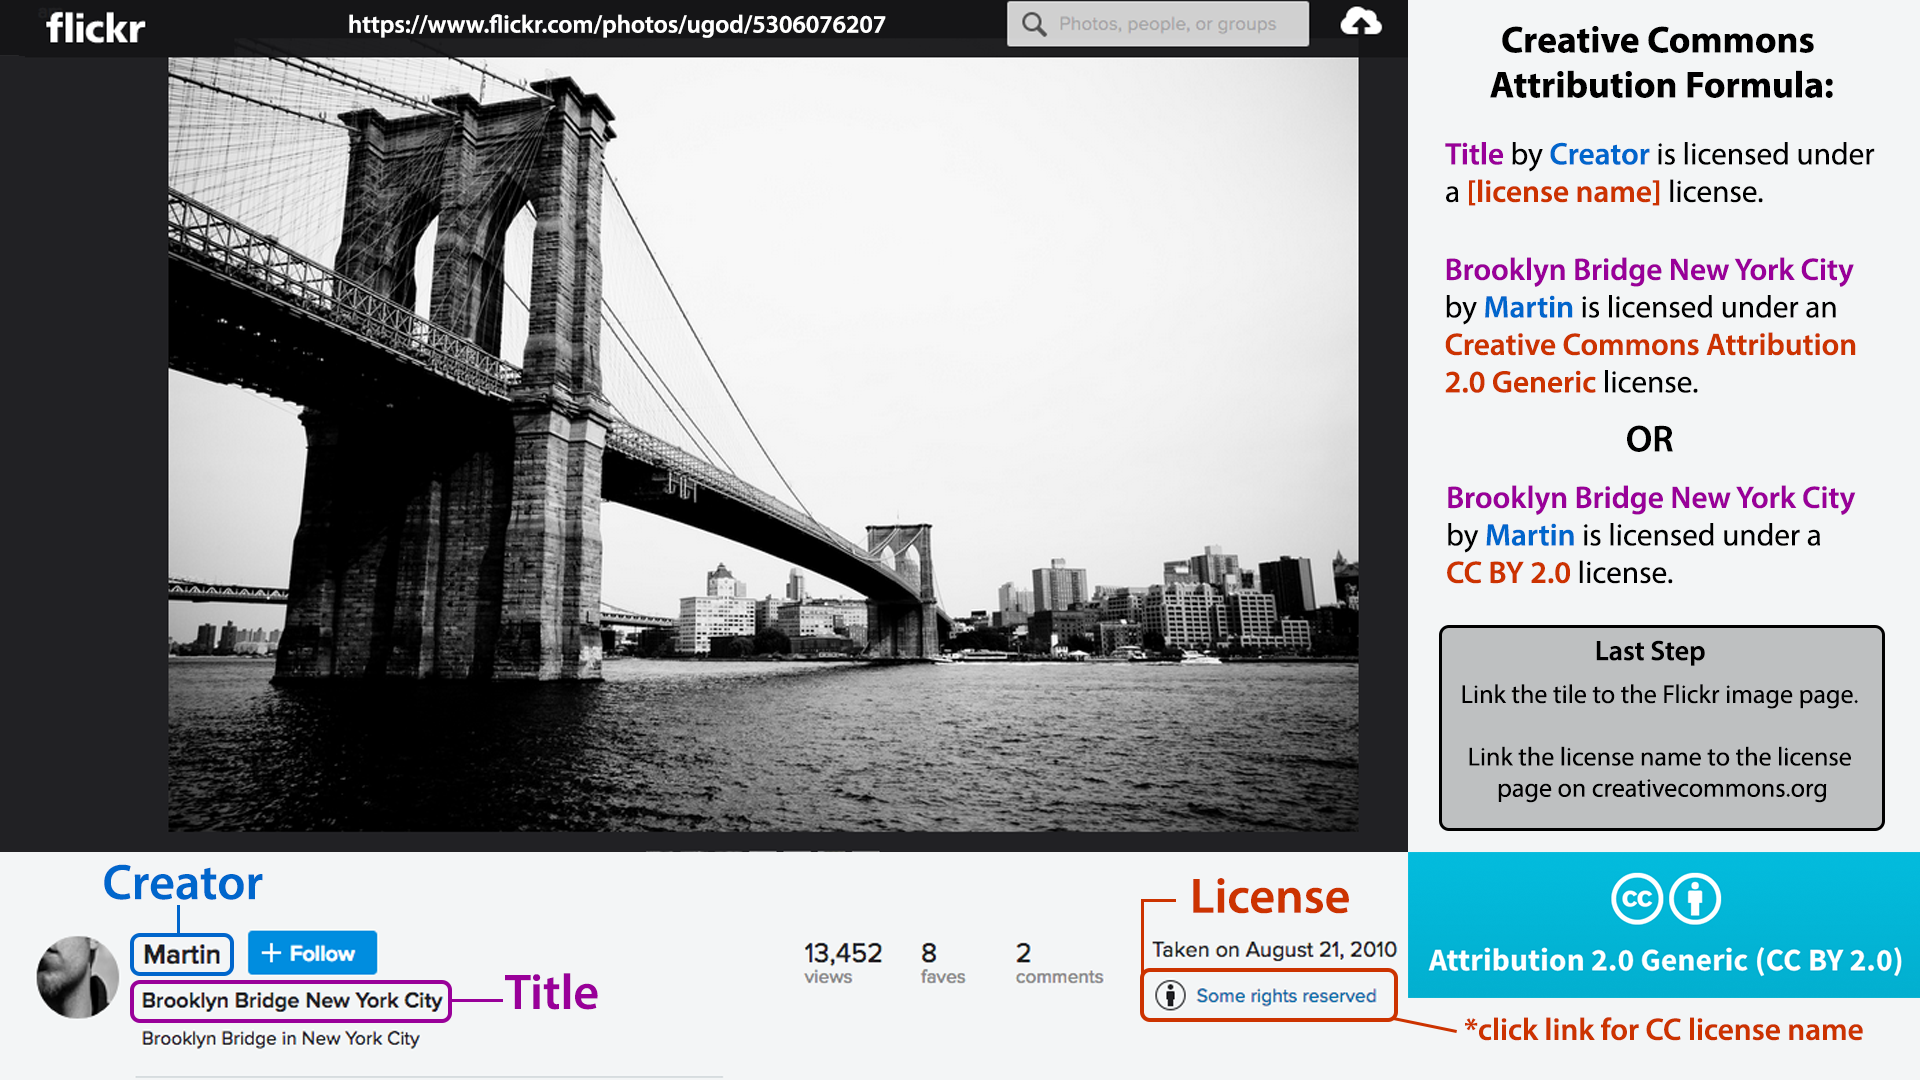 Creating a Creative Commons attribution for a Flickr image